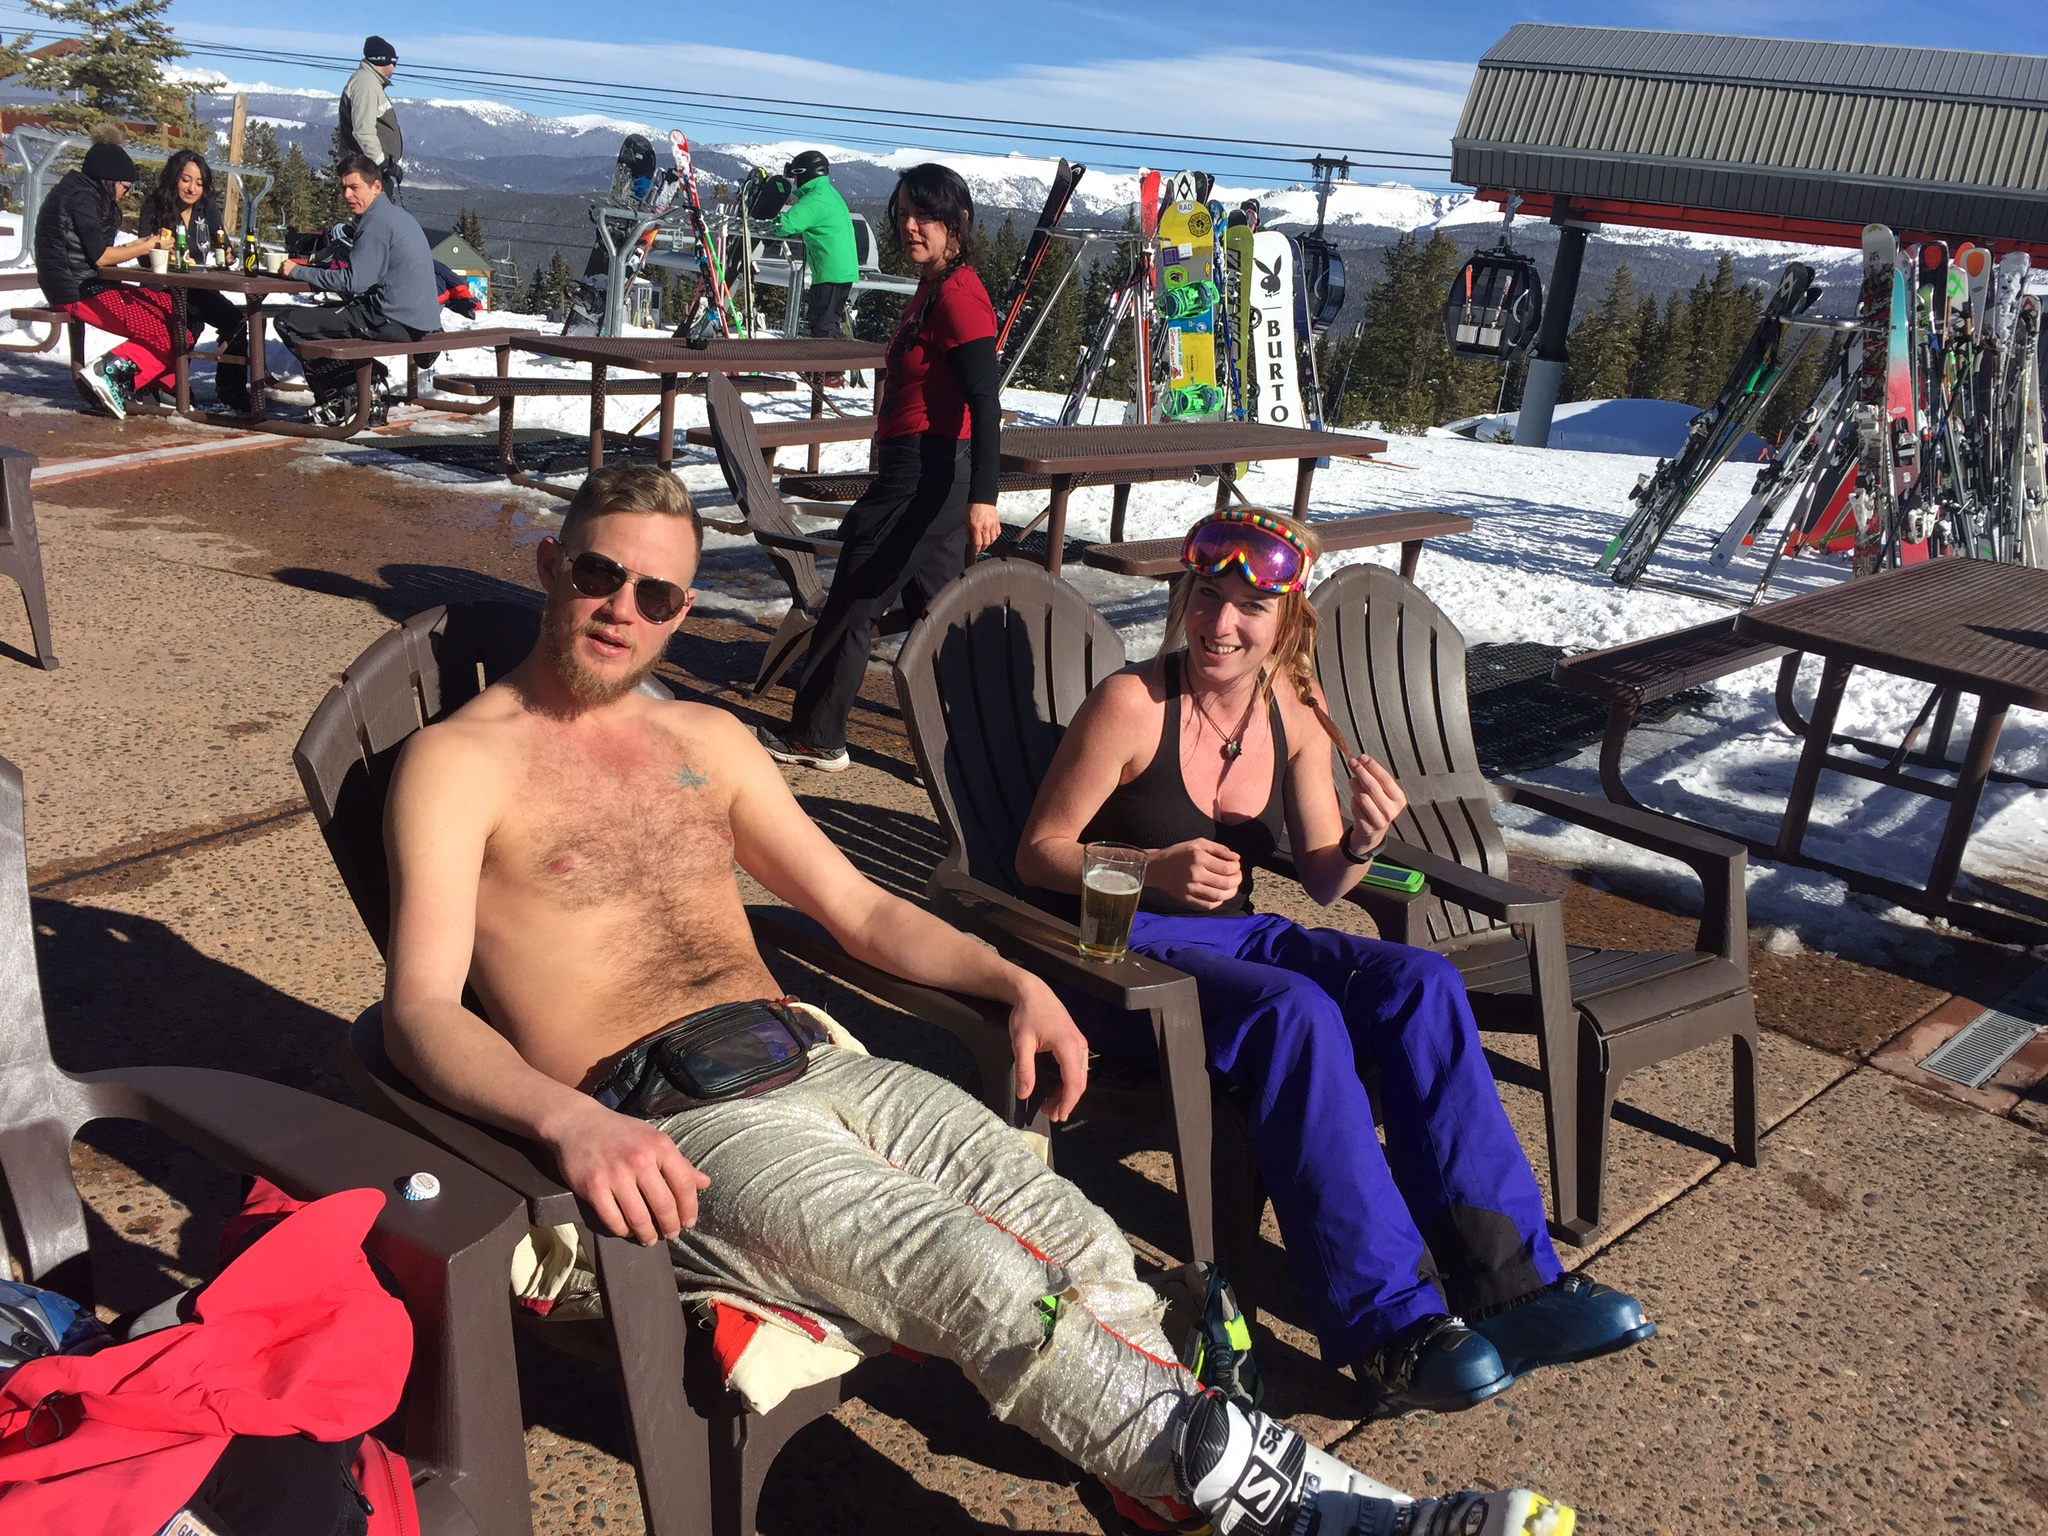 Daytripper365--Chilling on the mountain in Aspen.JPG